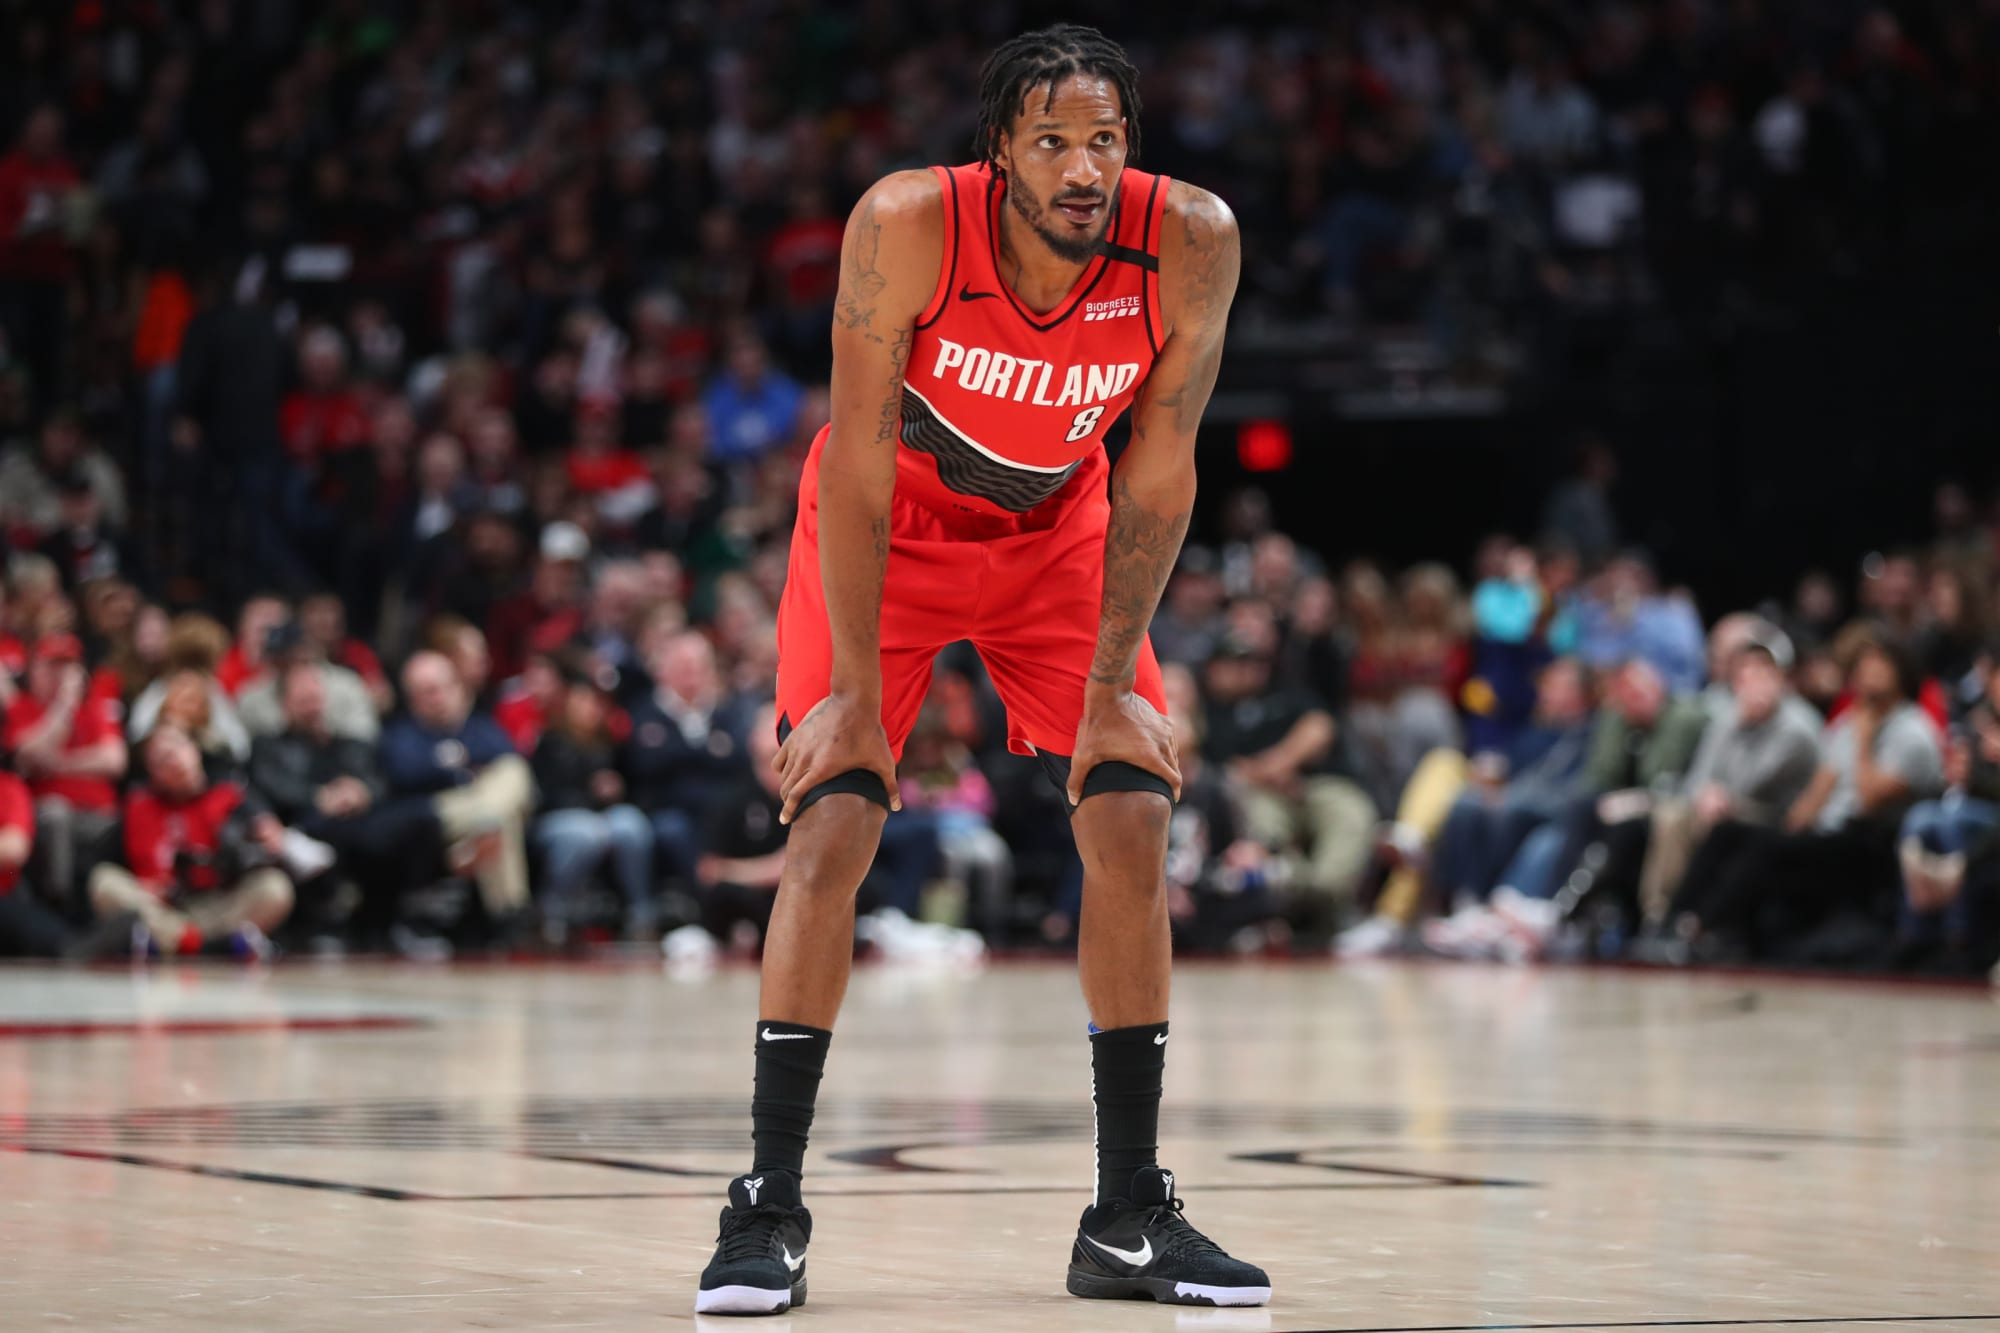 Raptors: Could Trevor Ariza end up in Toronto if he gets bought out?